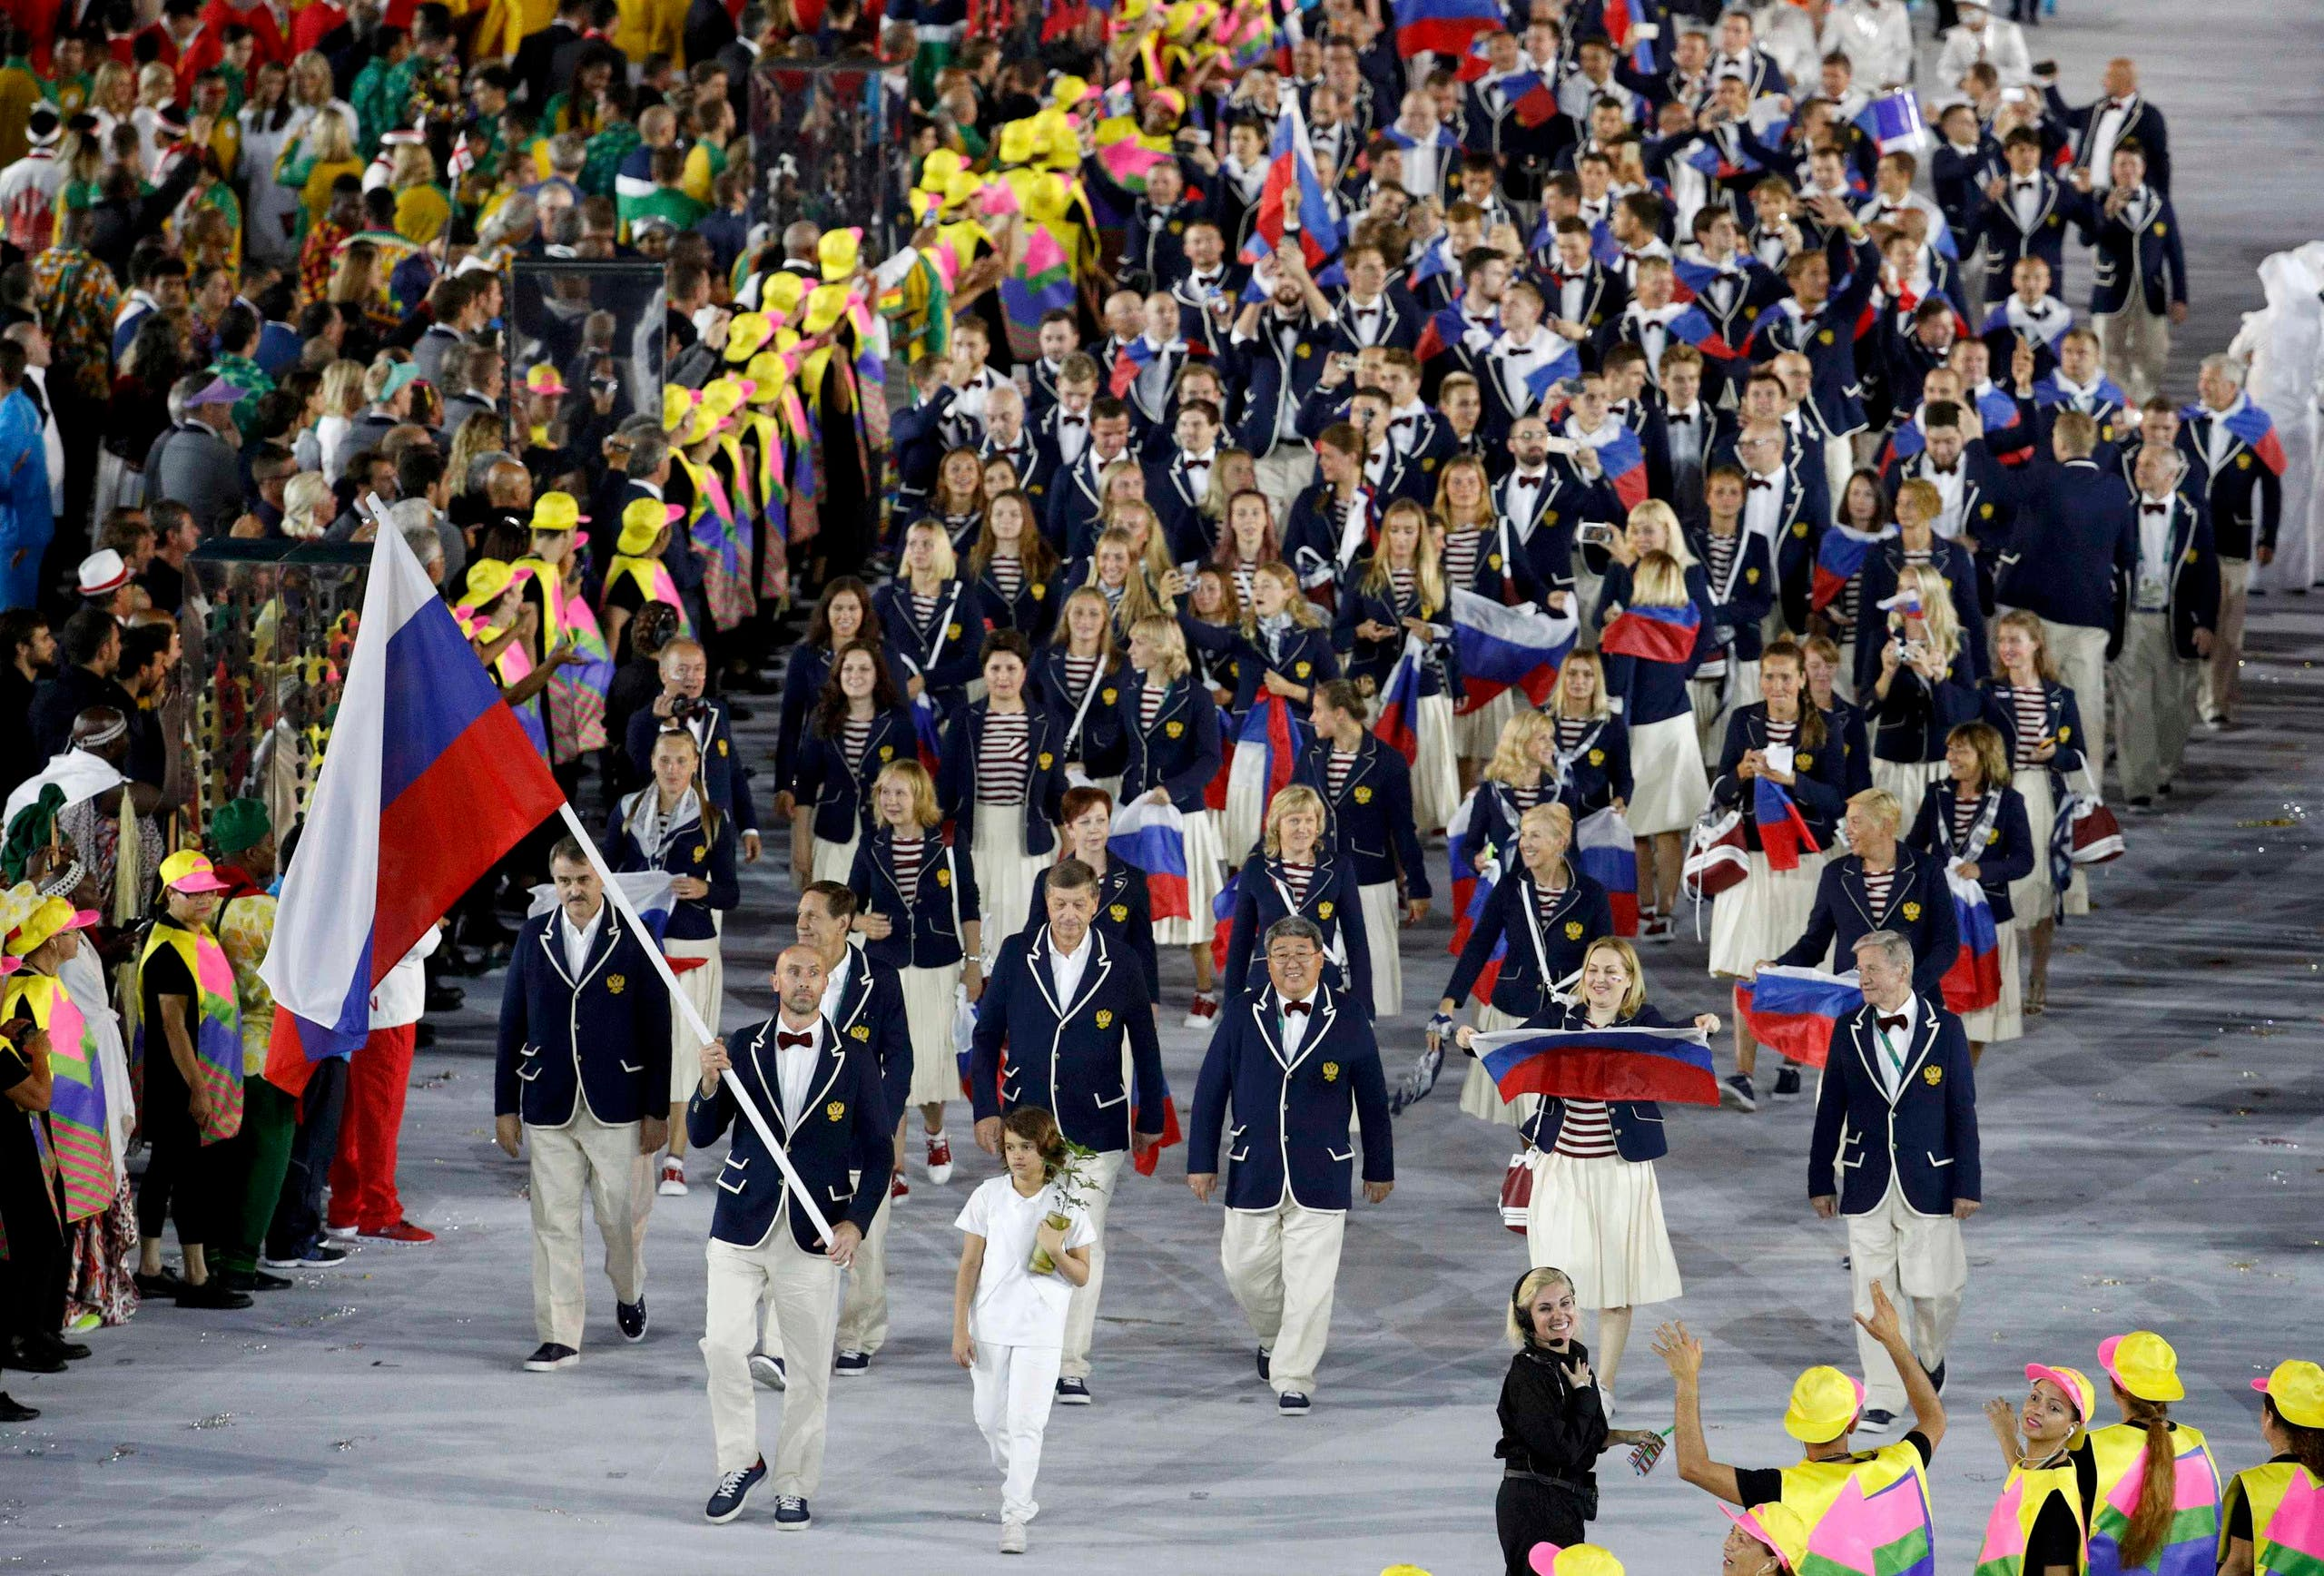 Flagbearer Sergey Tetyukhin (RUS) of Russia leads his contingent during the opening ceremony. REUTERS